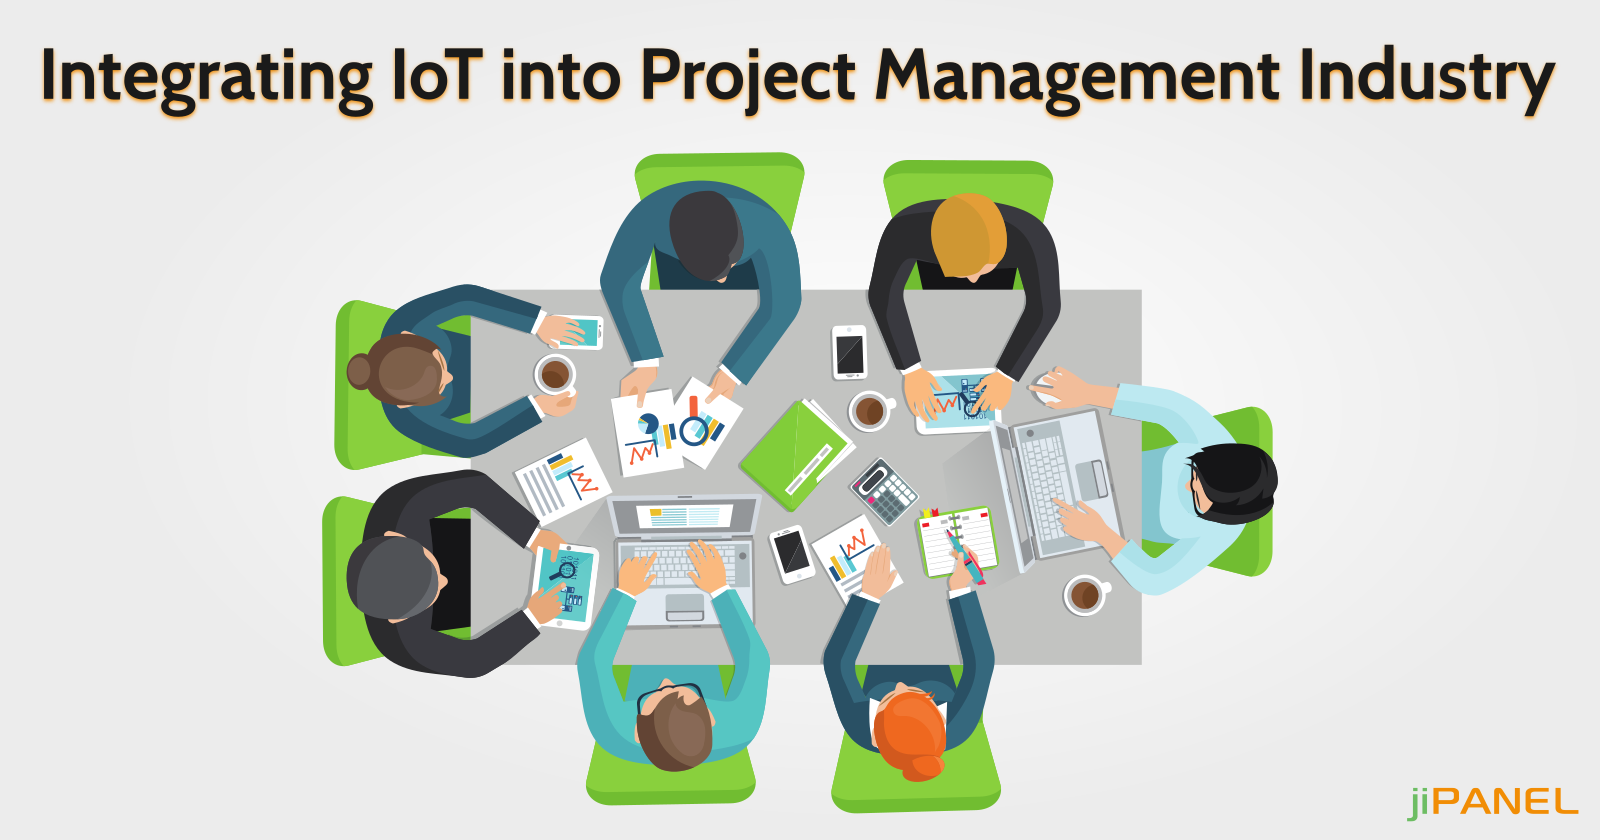 How IoT will Tranform the Project Management Industry